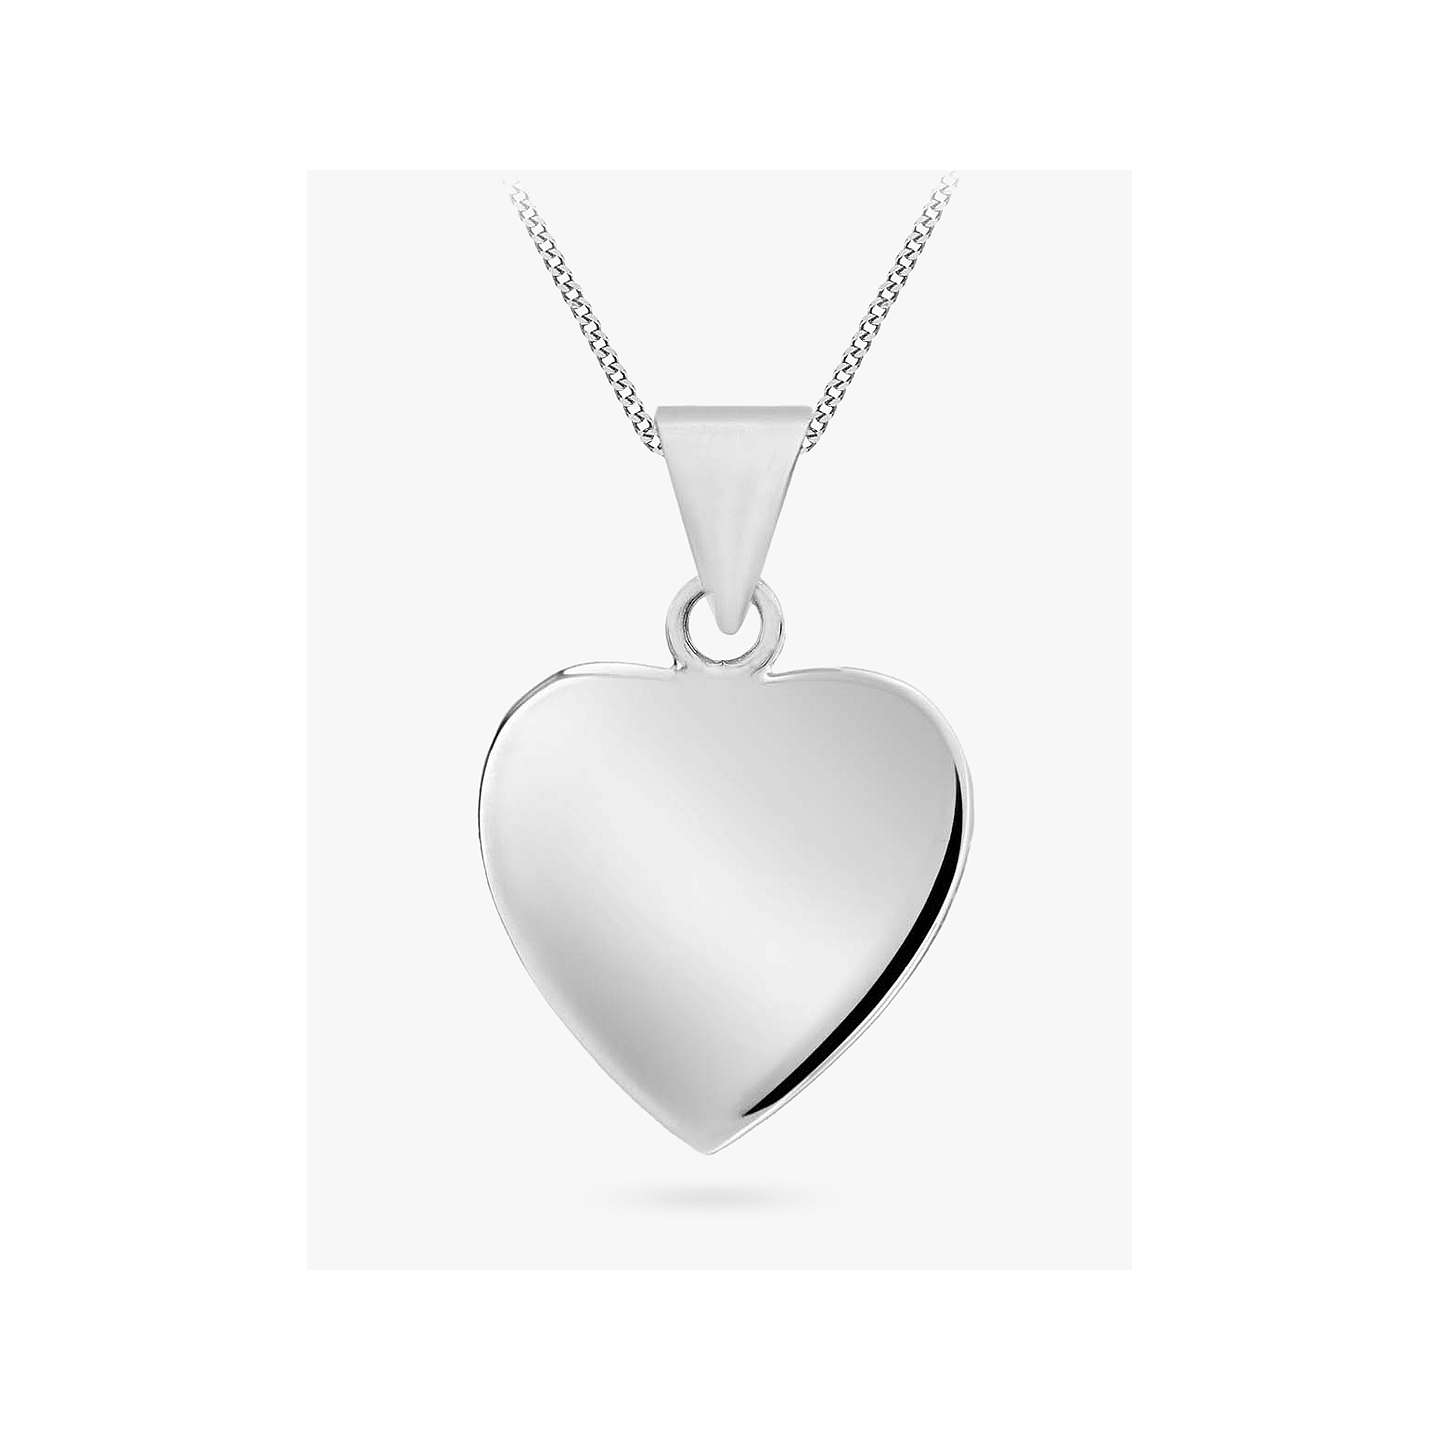 jewellery necklace heart bead necklaces oliver silver mini bonas style